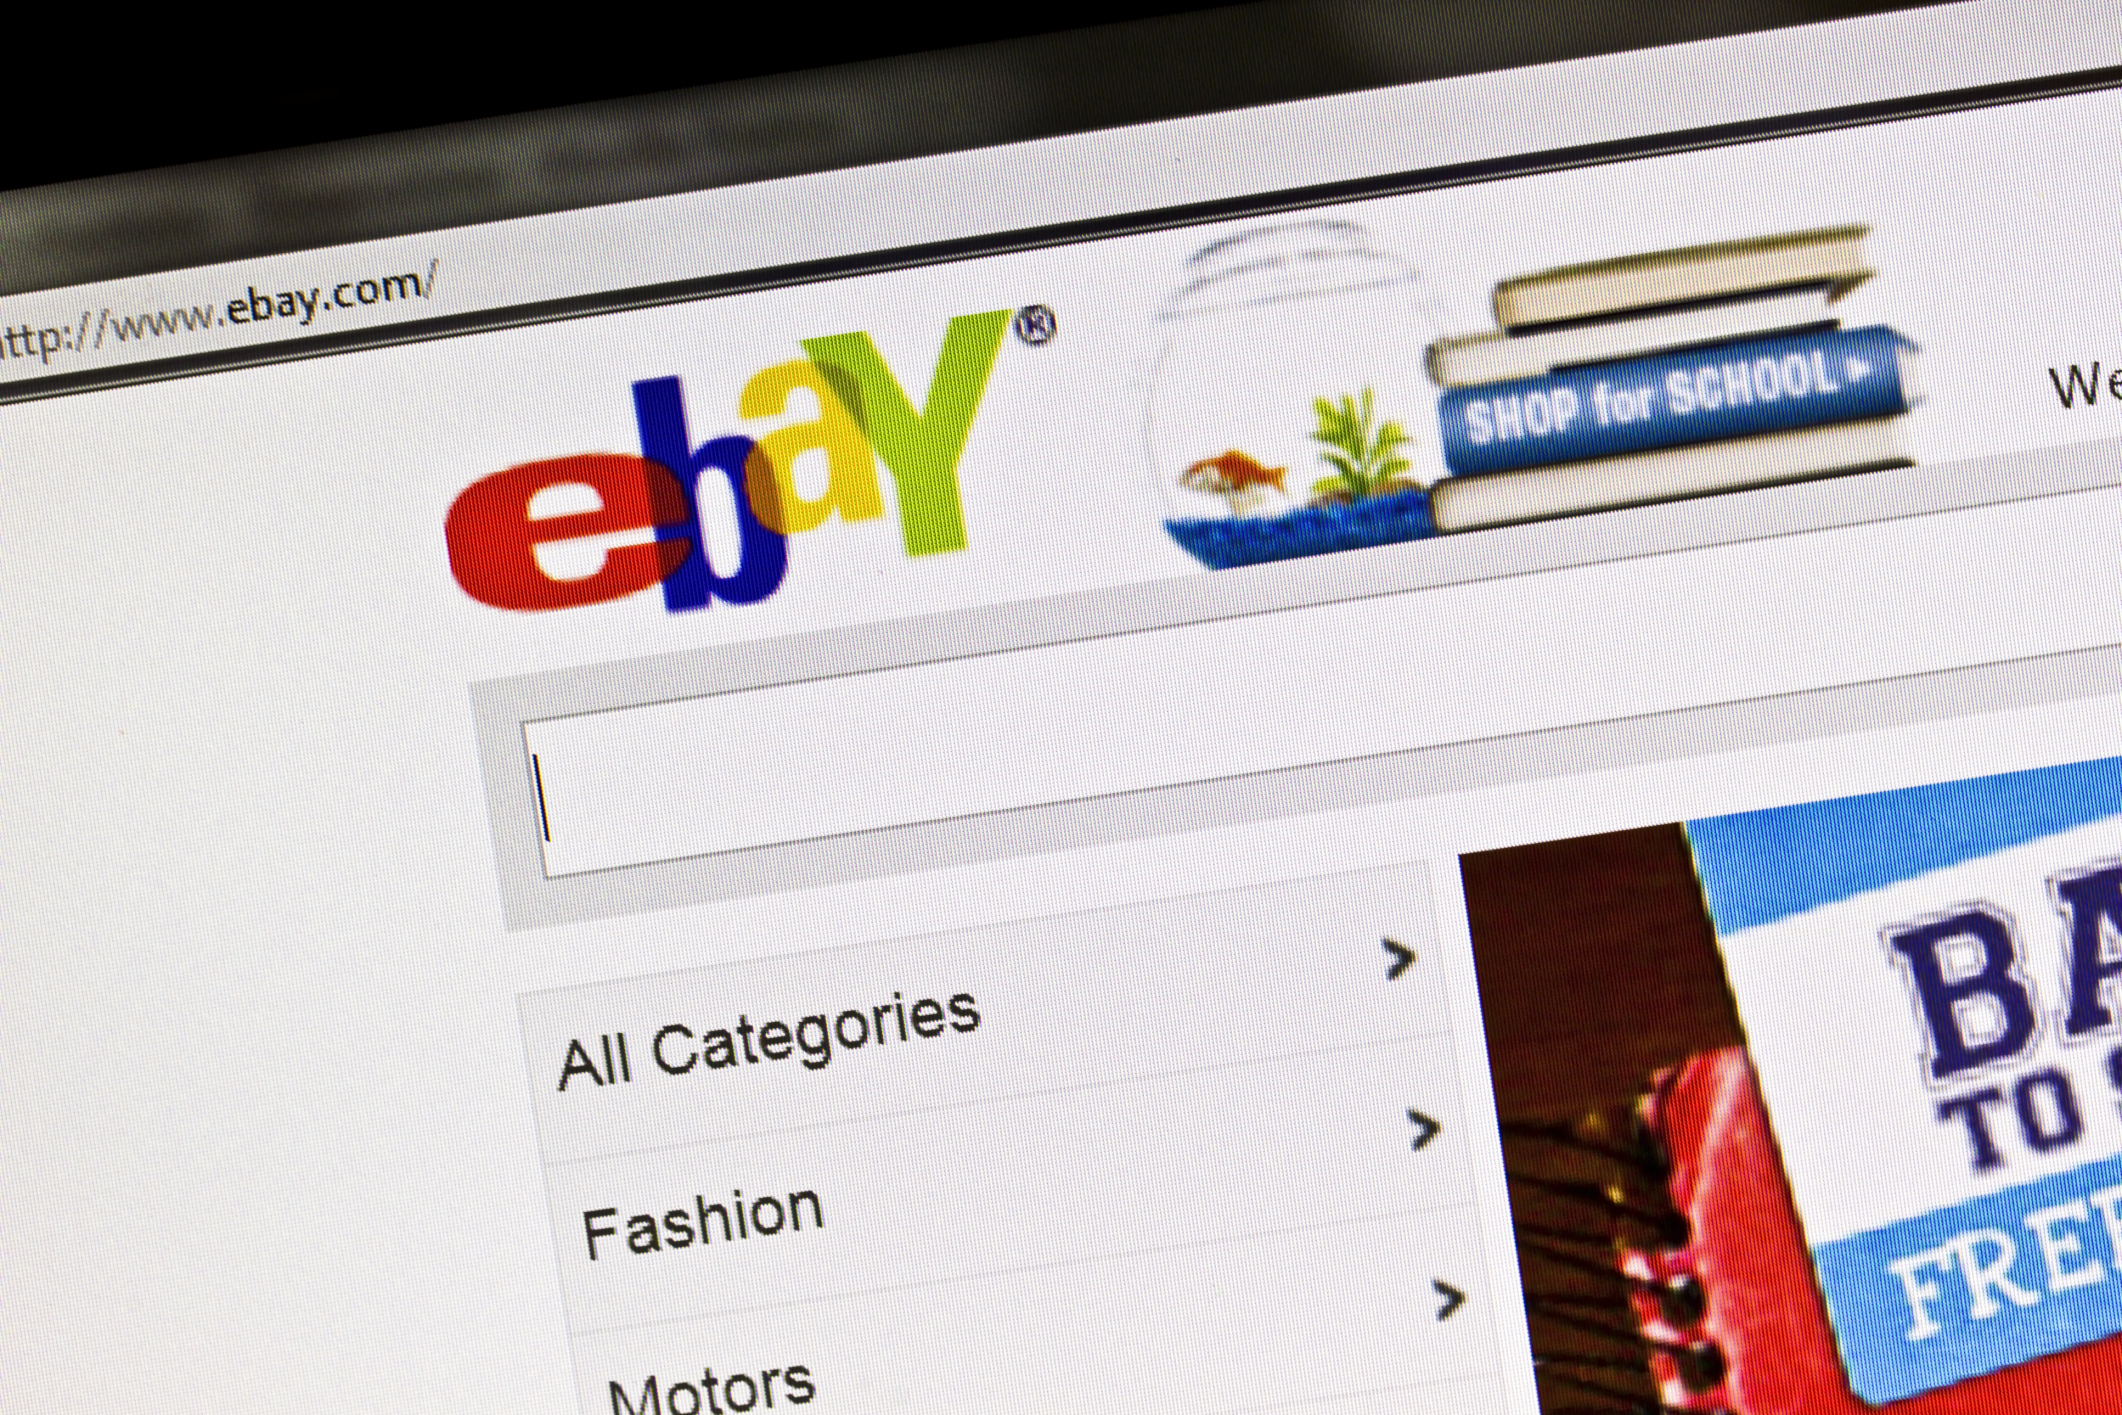 Sell your junk online